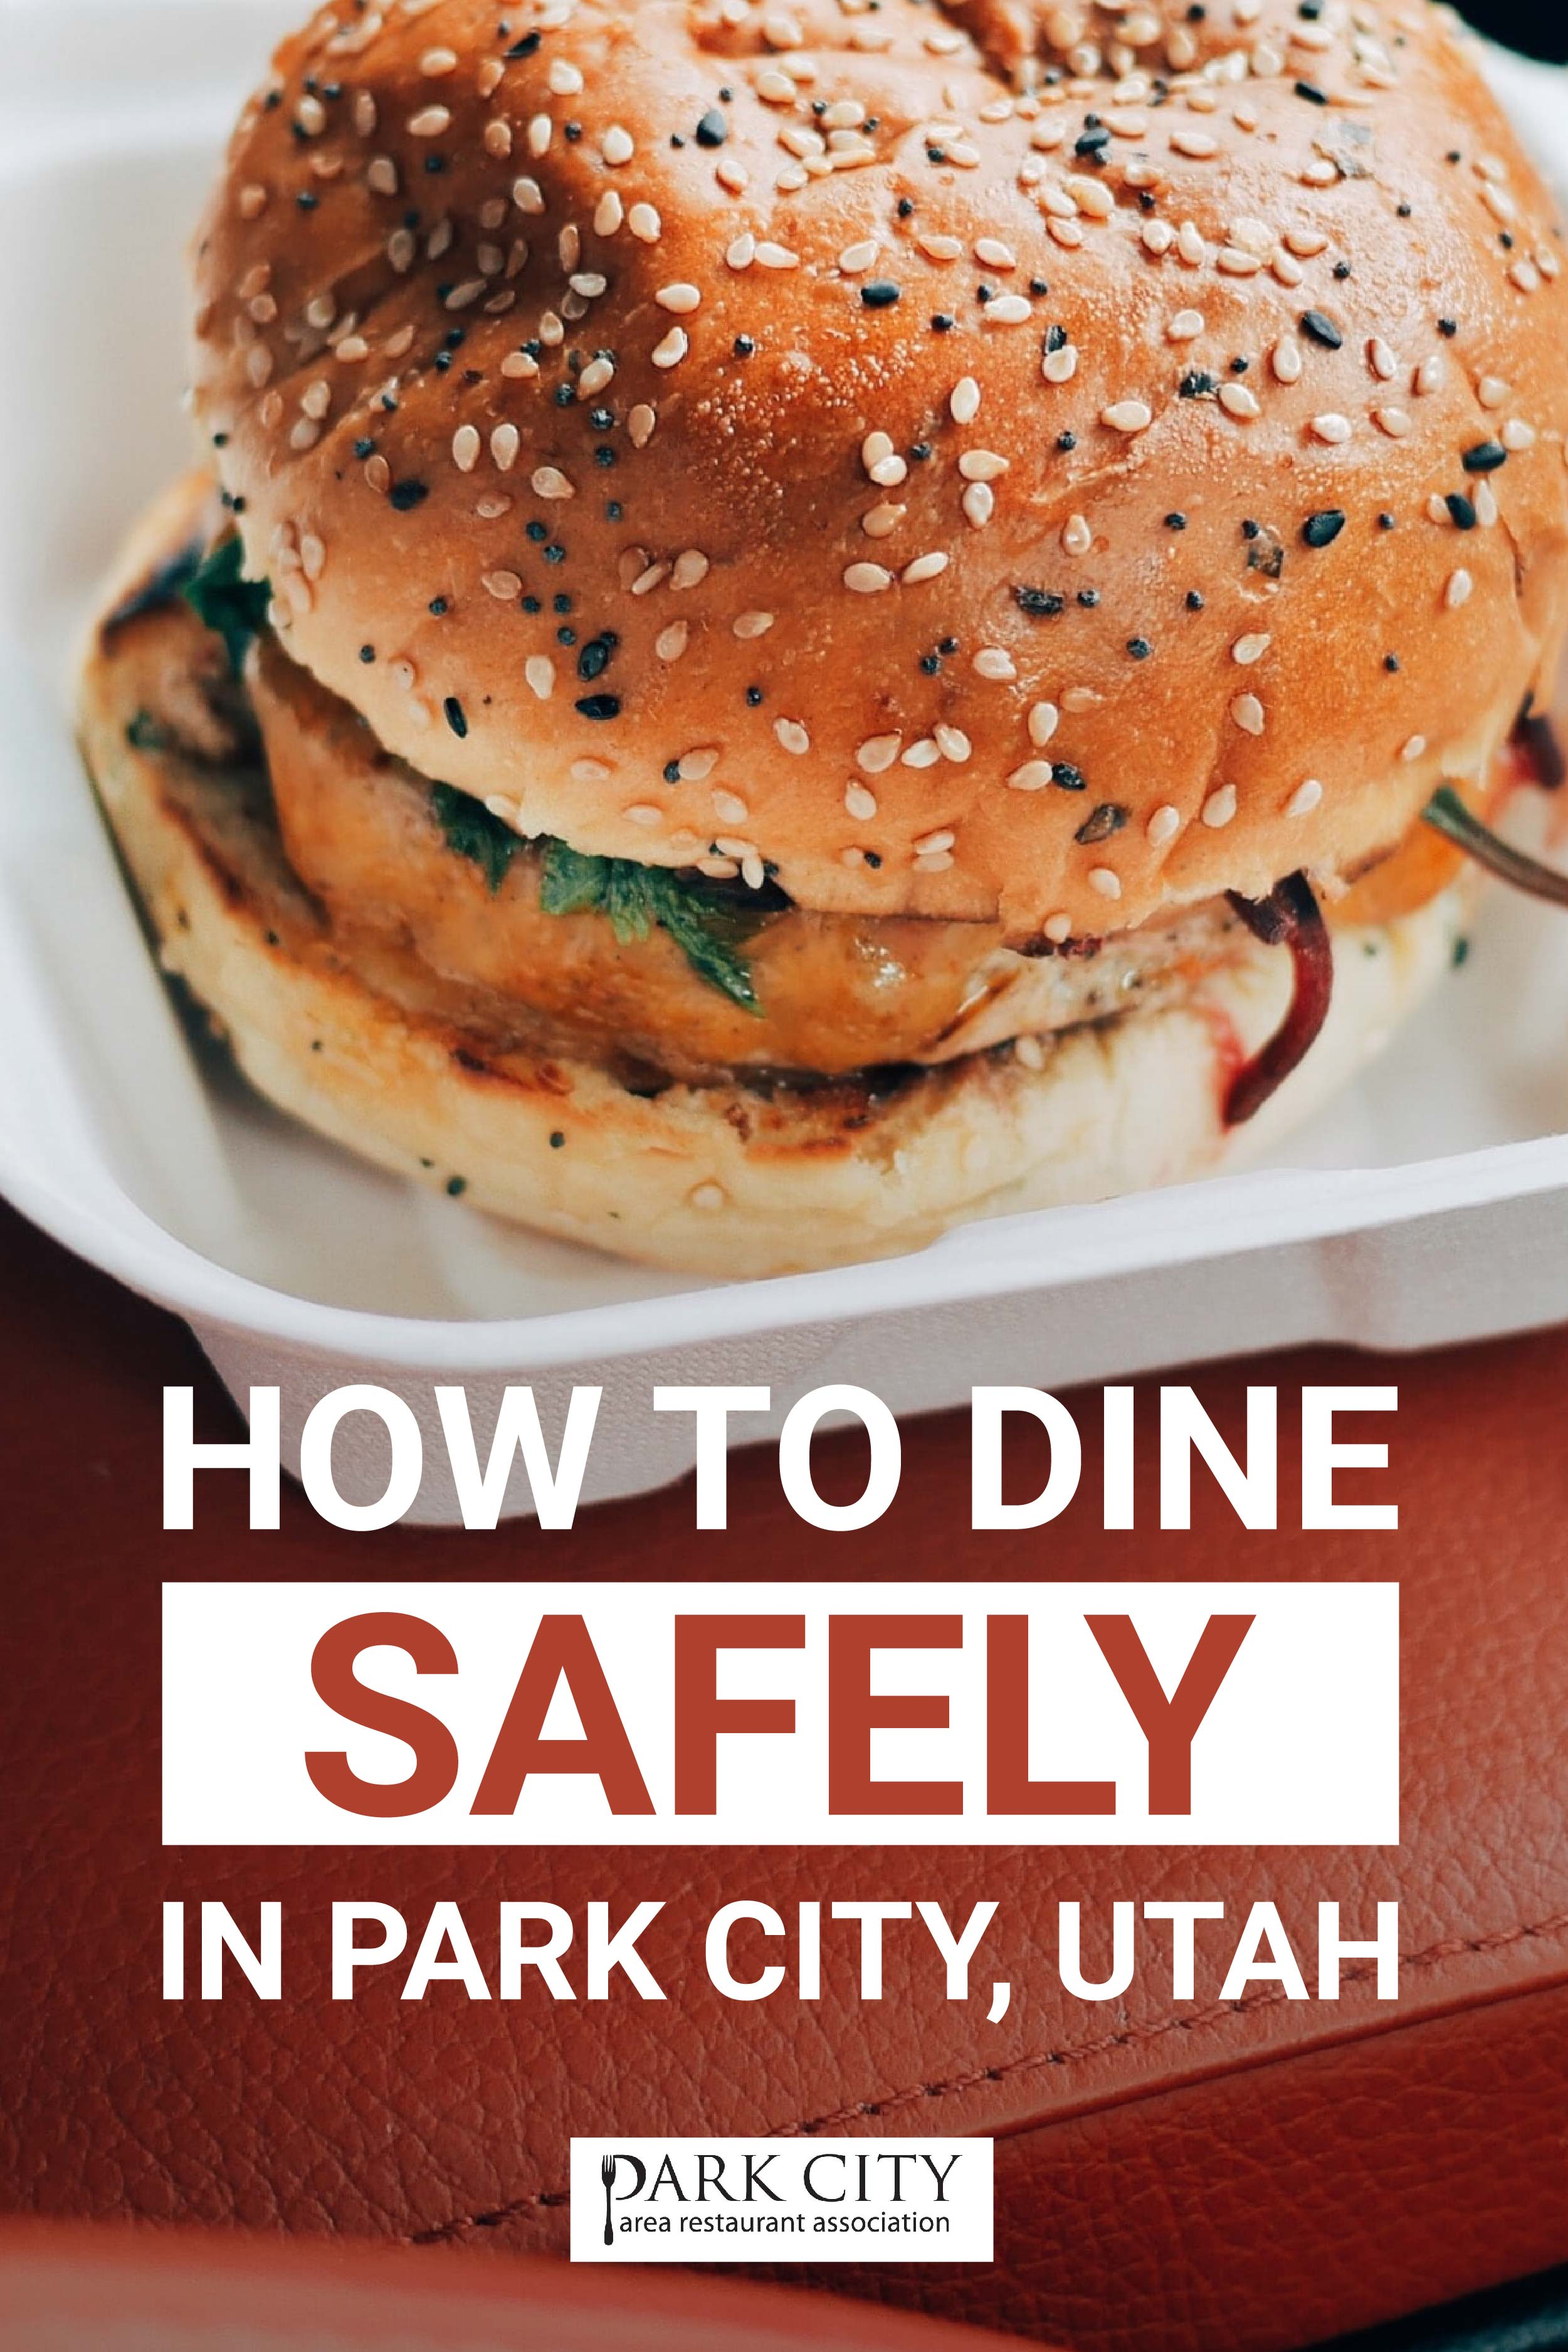 How to dine in Park City safely during COVID.